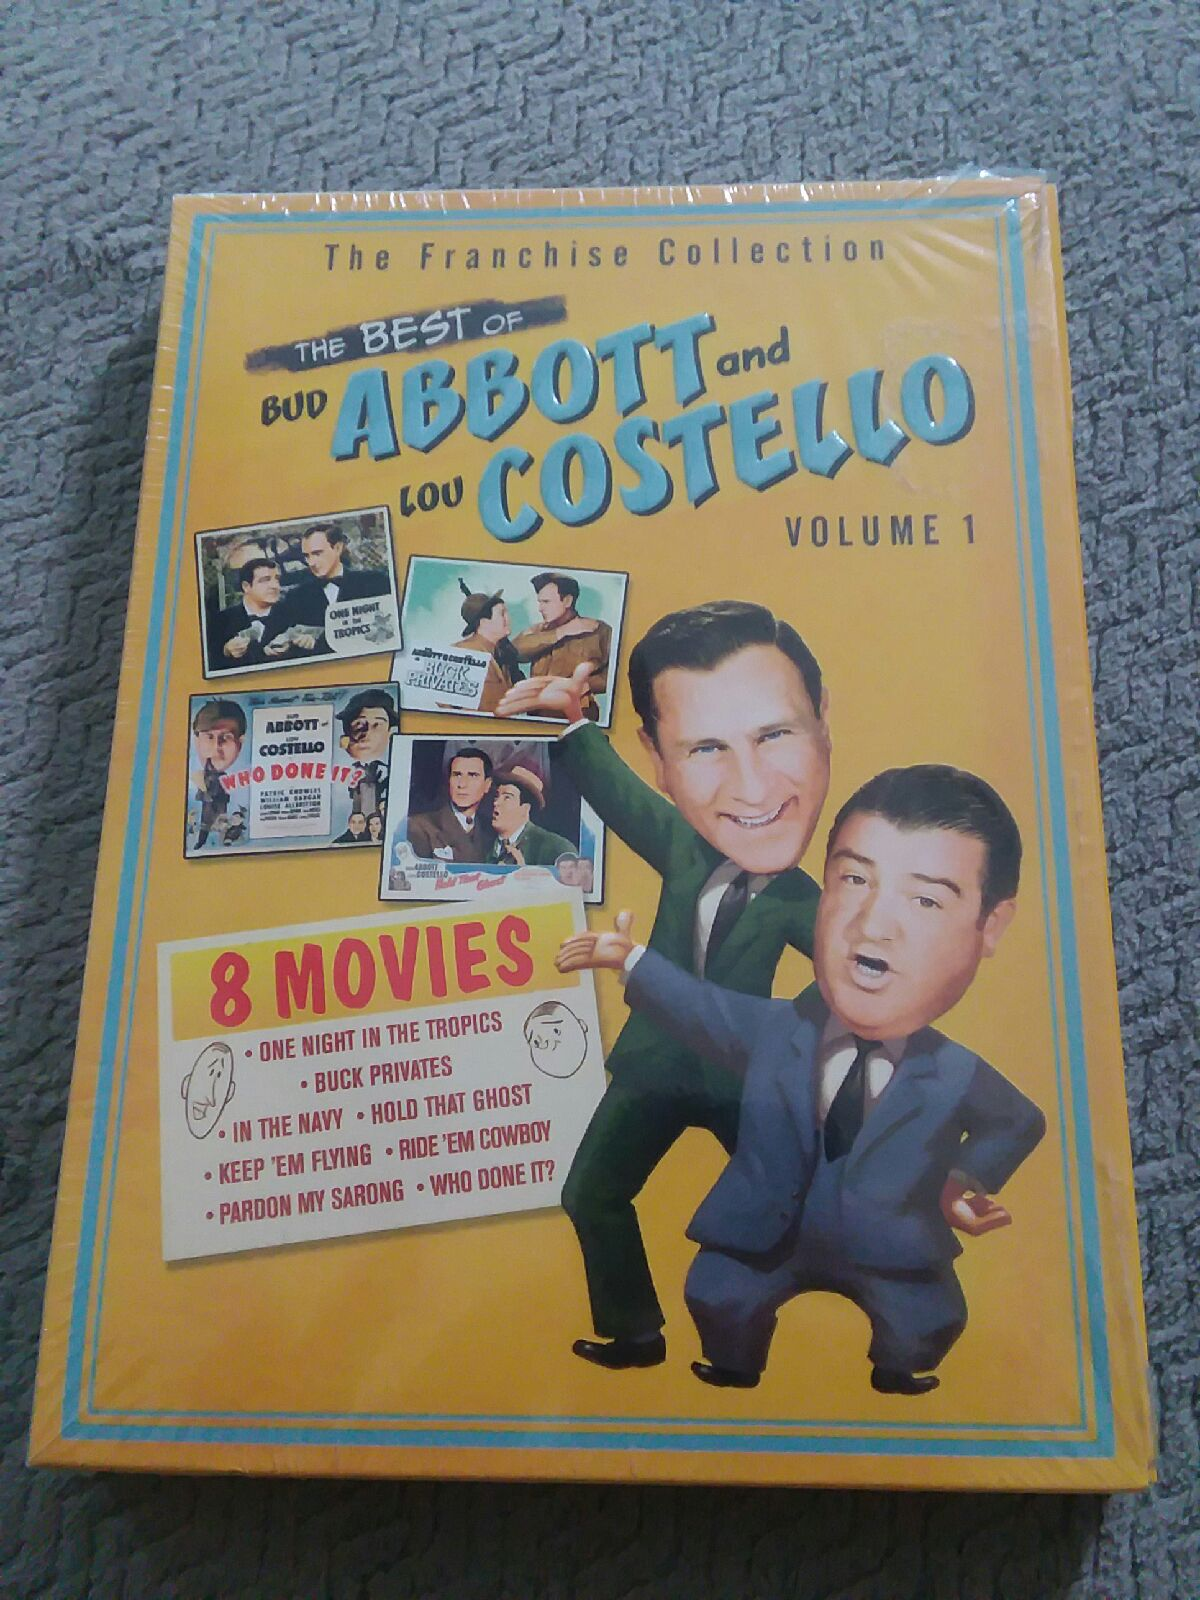 The Best of Abbott & Costello Vol. 1 DVD